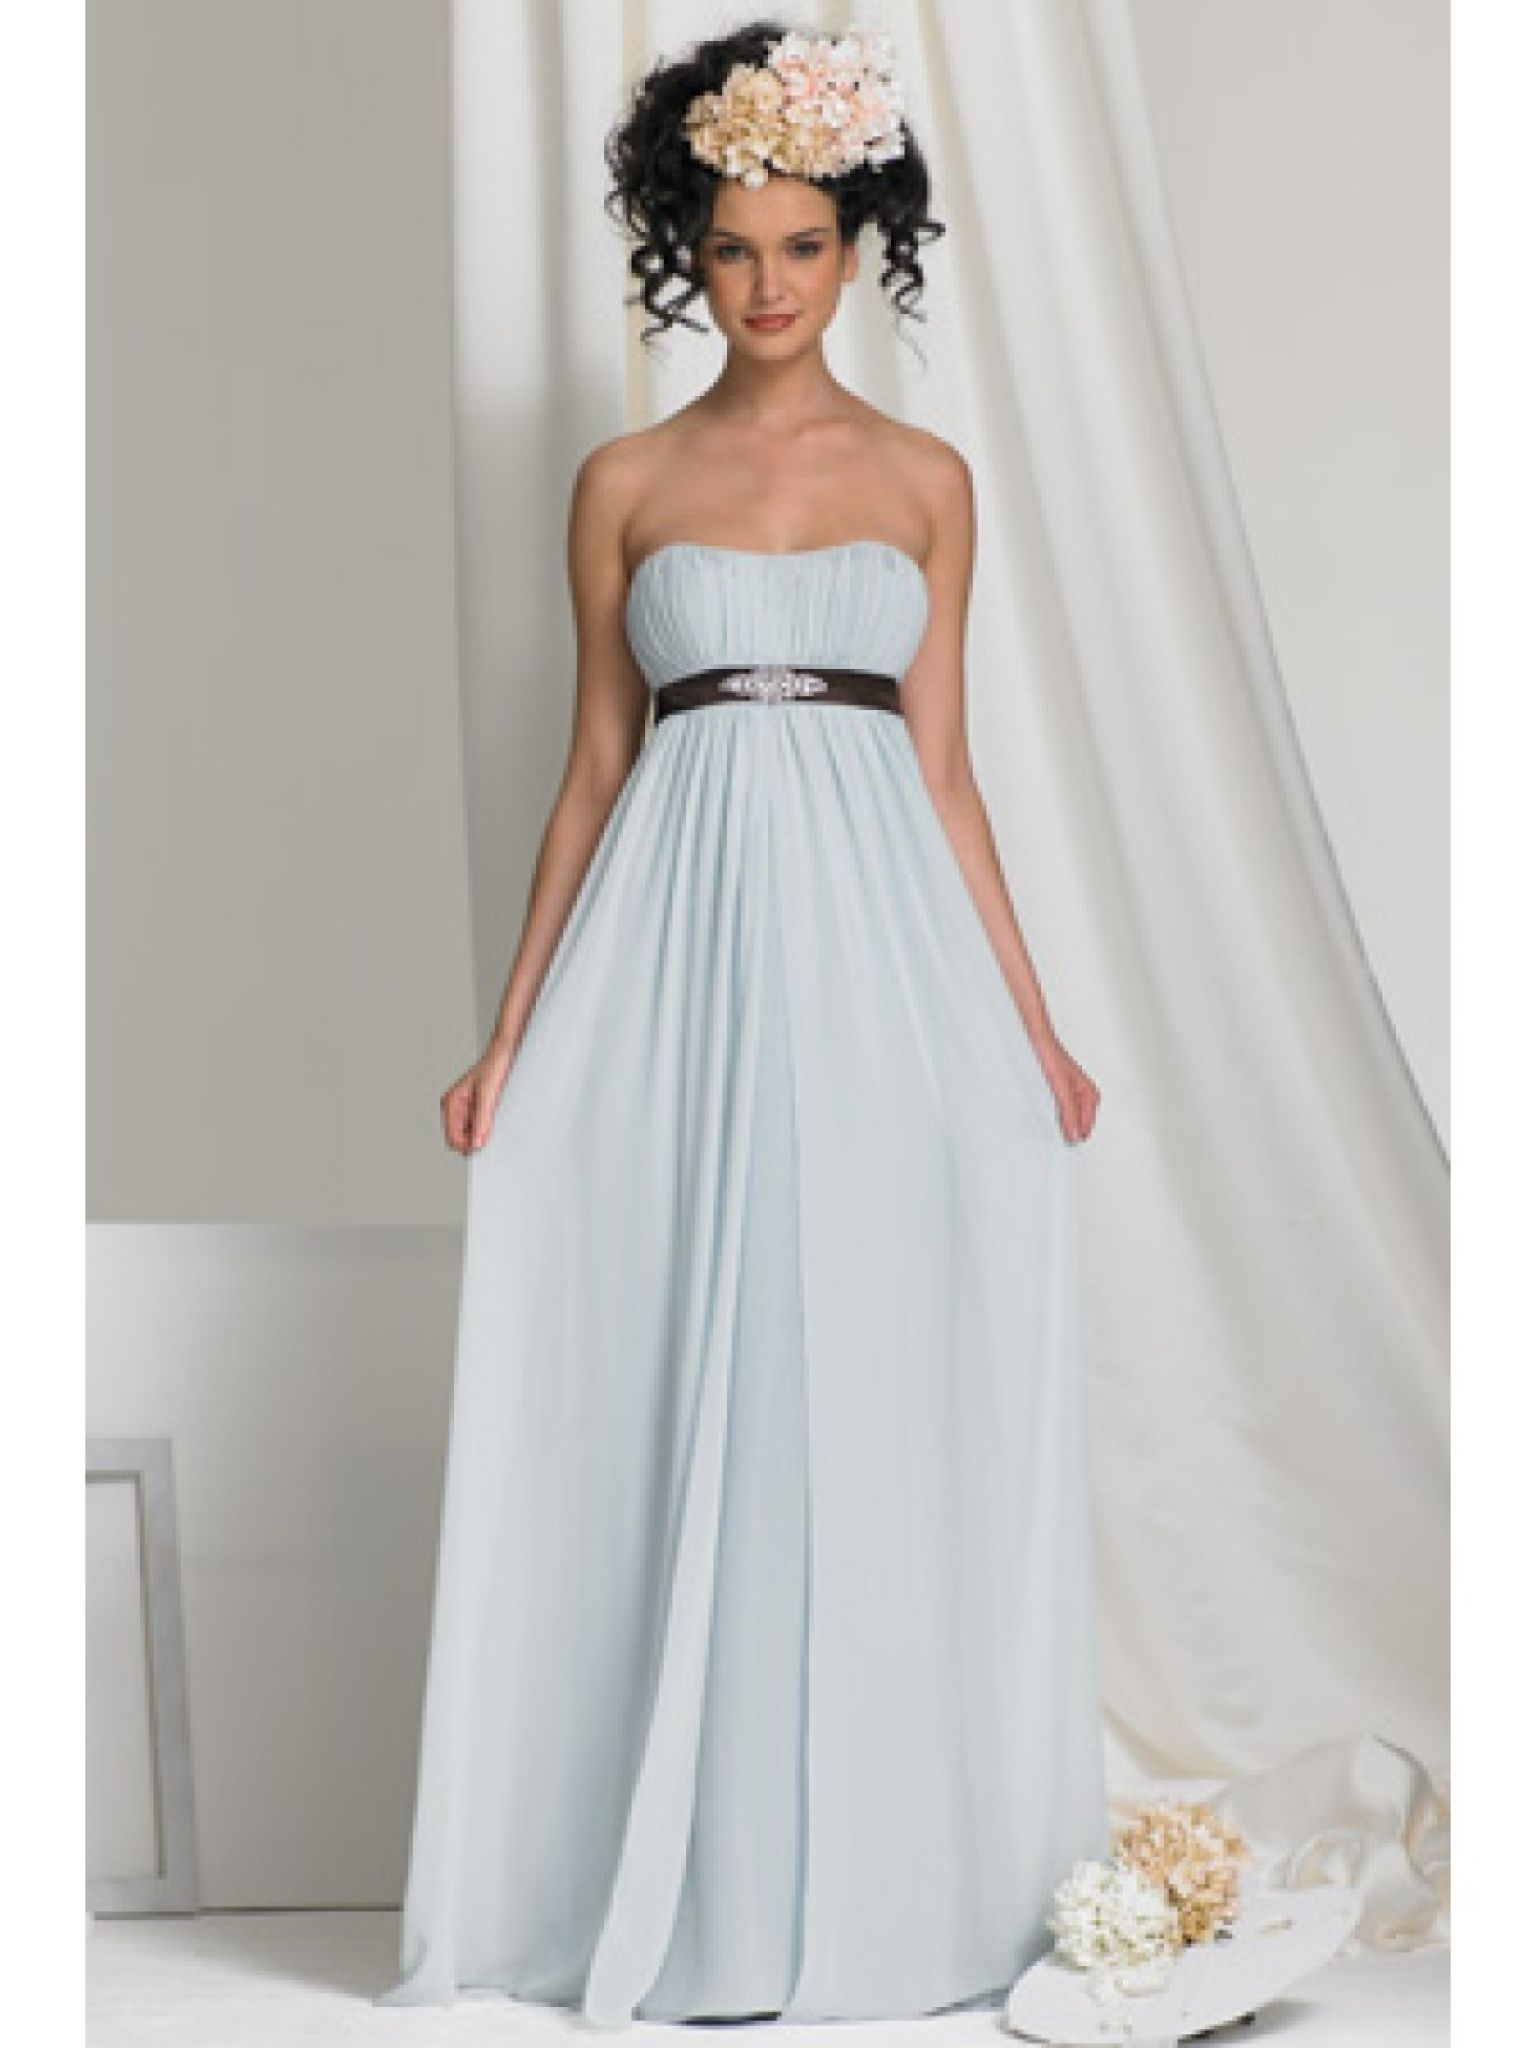 cheap wedding dresses plus size for under 100 - dress for country ...